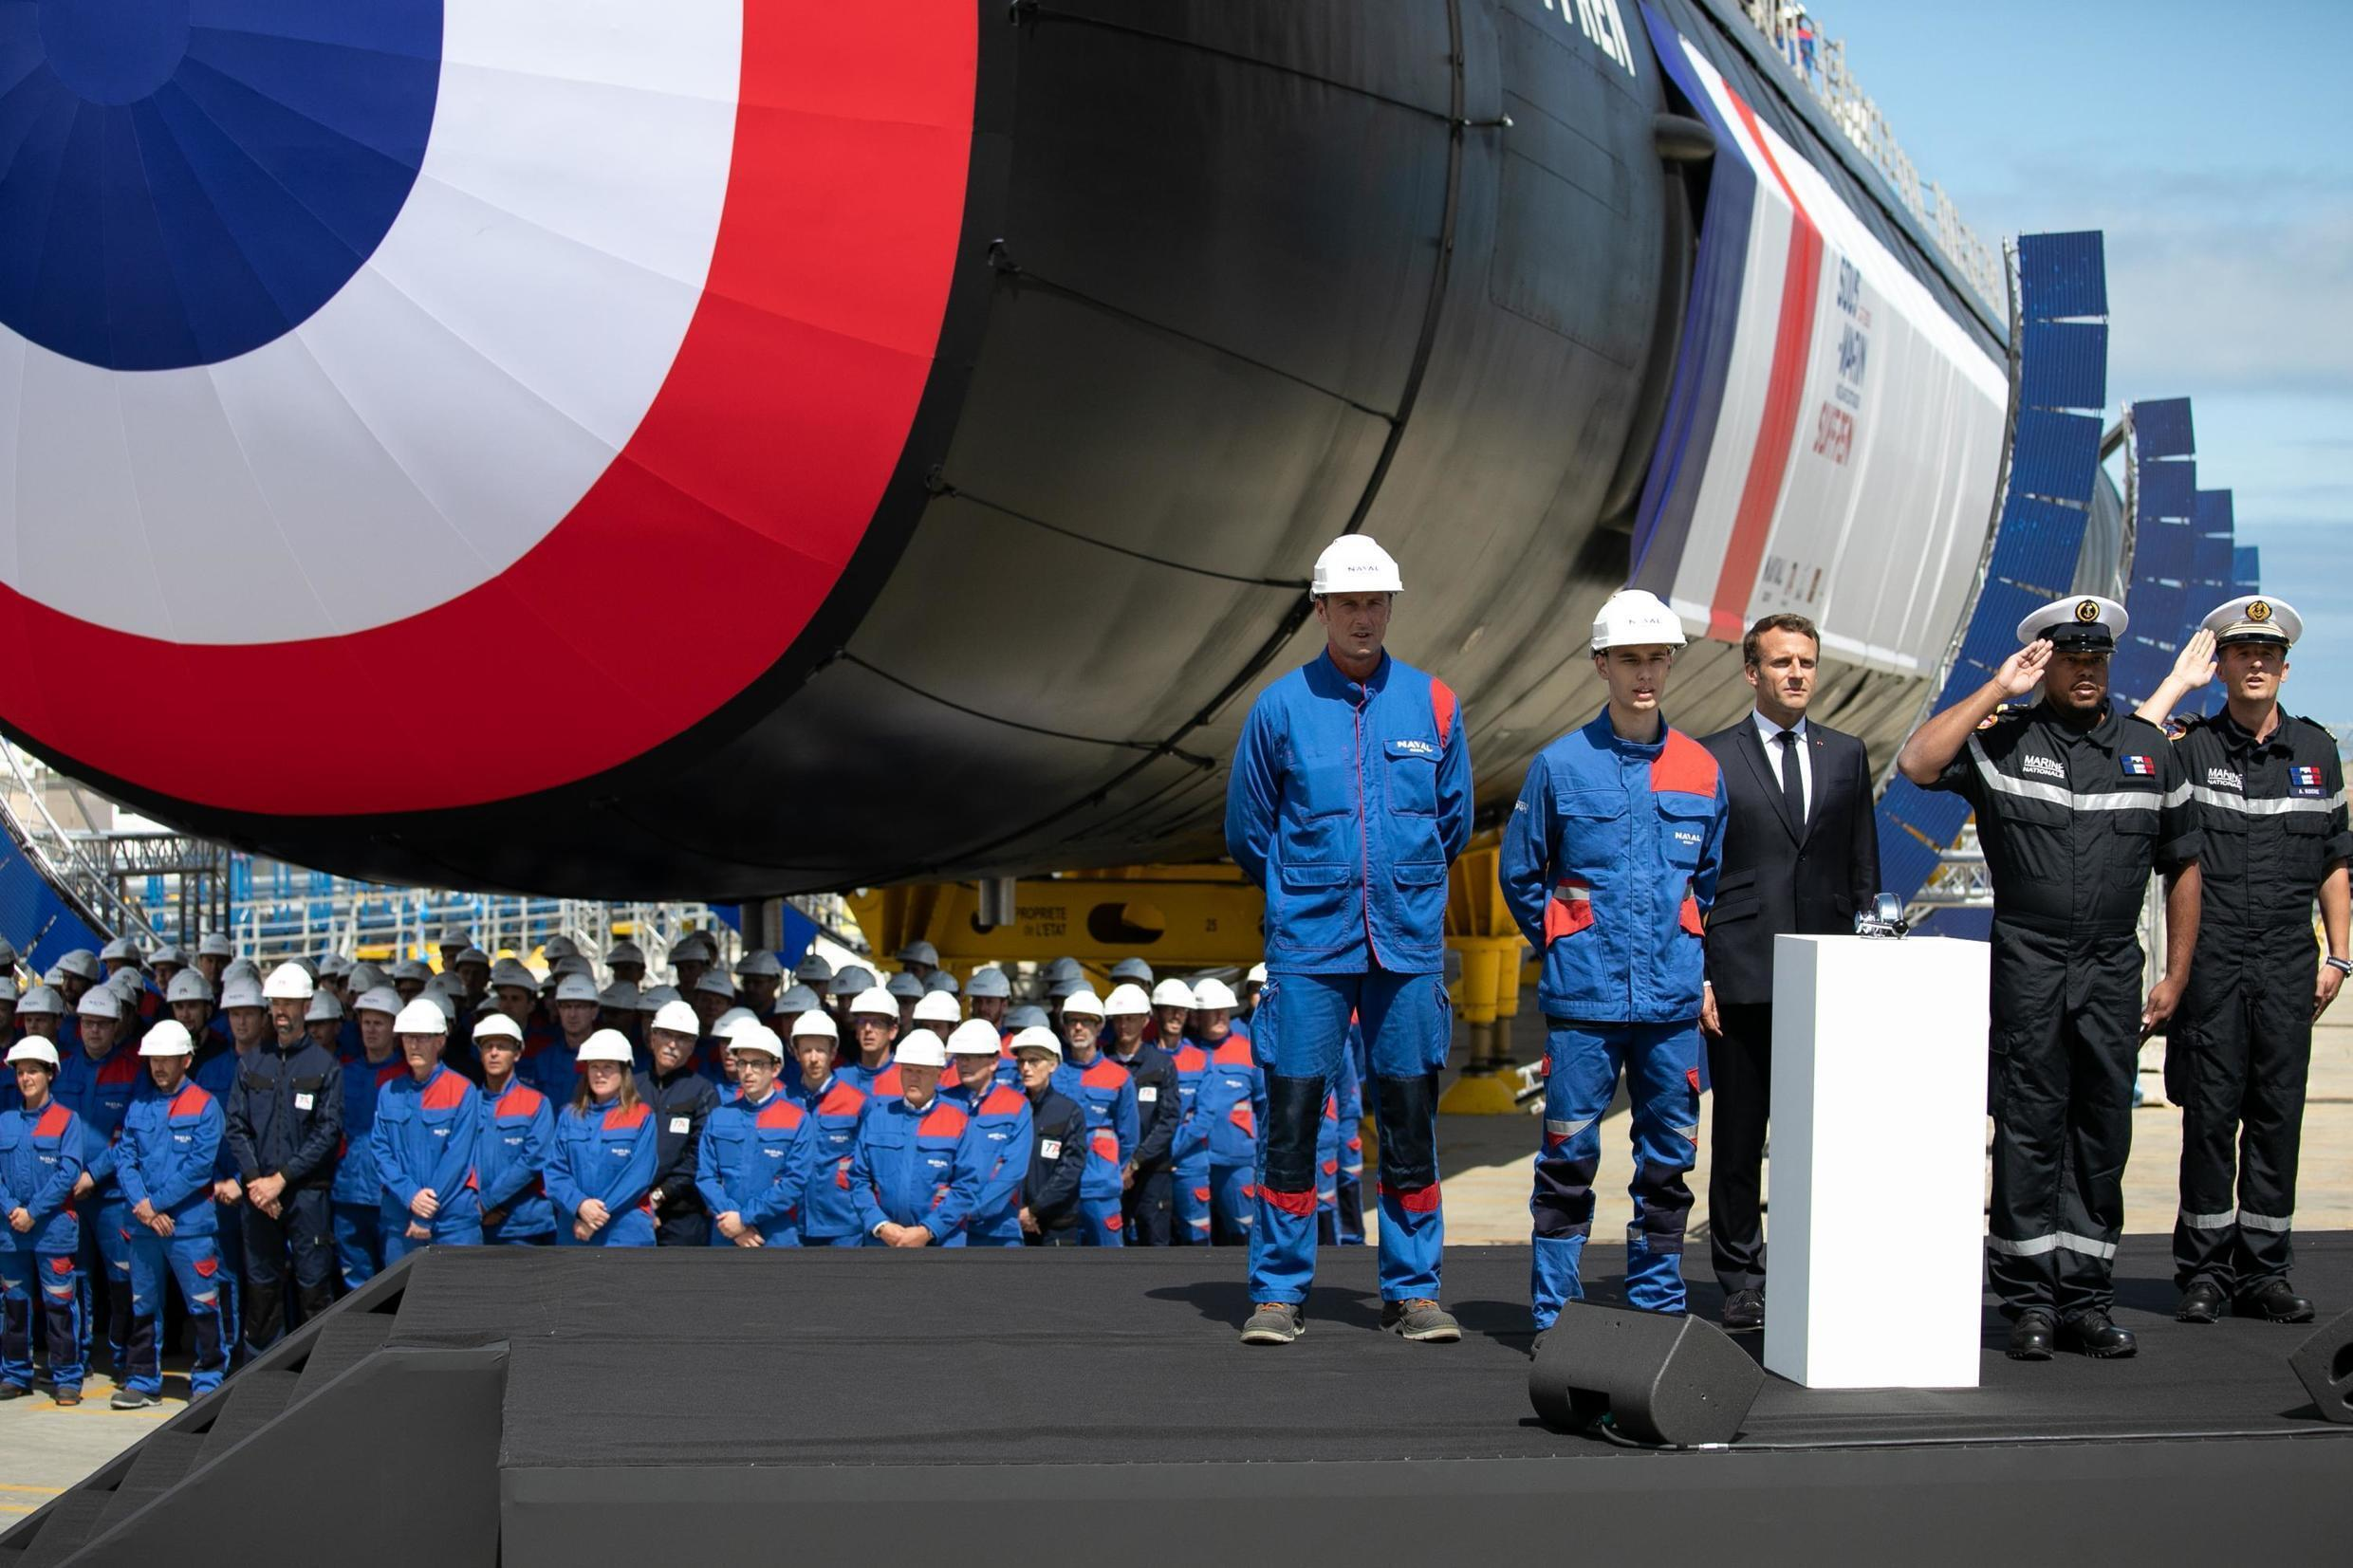 """French President Emmanuel Macron attends the official launch ceremony of the new French nuclear submarine """"Suffren"""" in Cherbourg, northwestern France, 12 July 2019."""